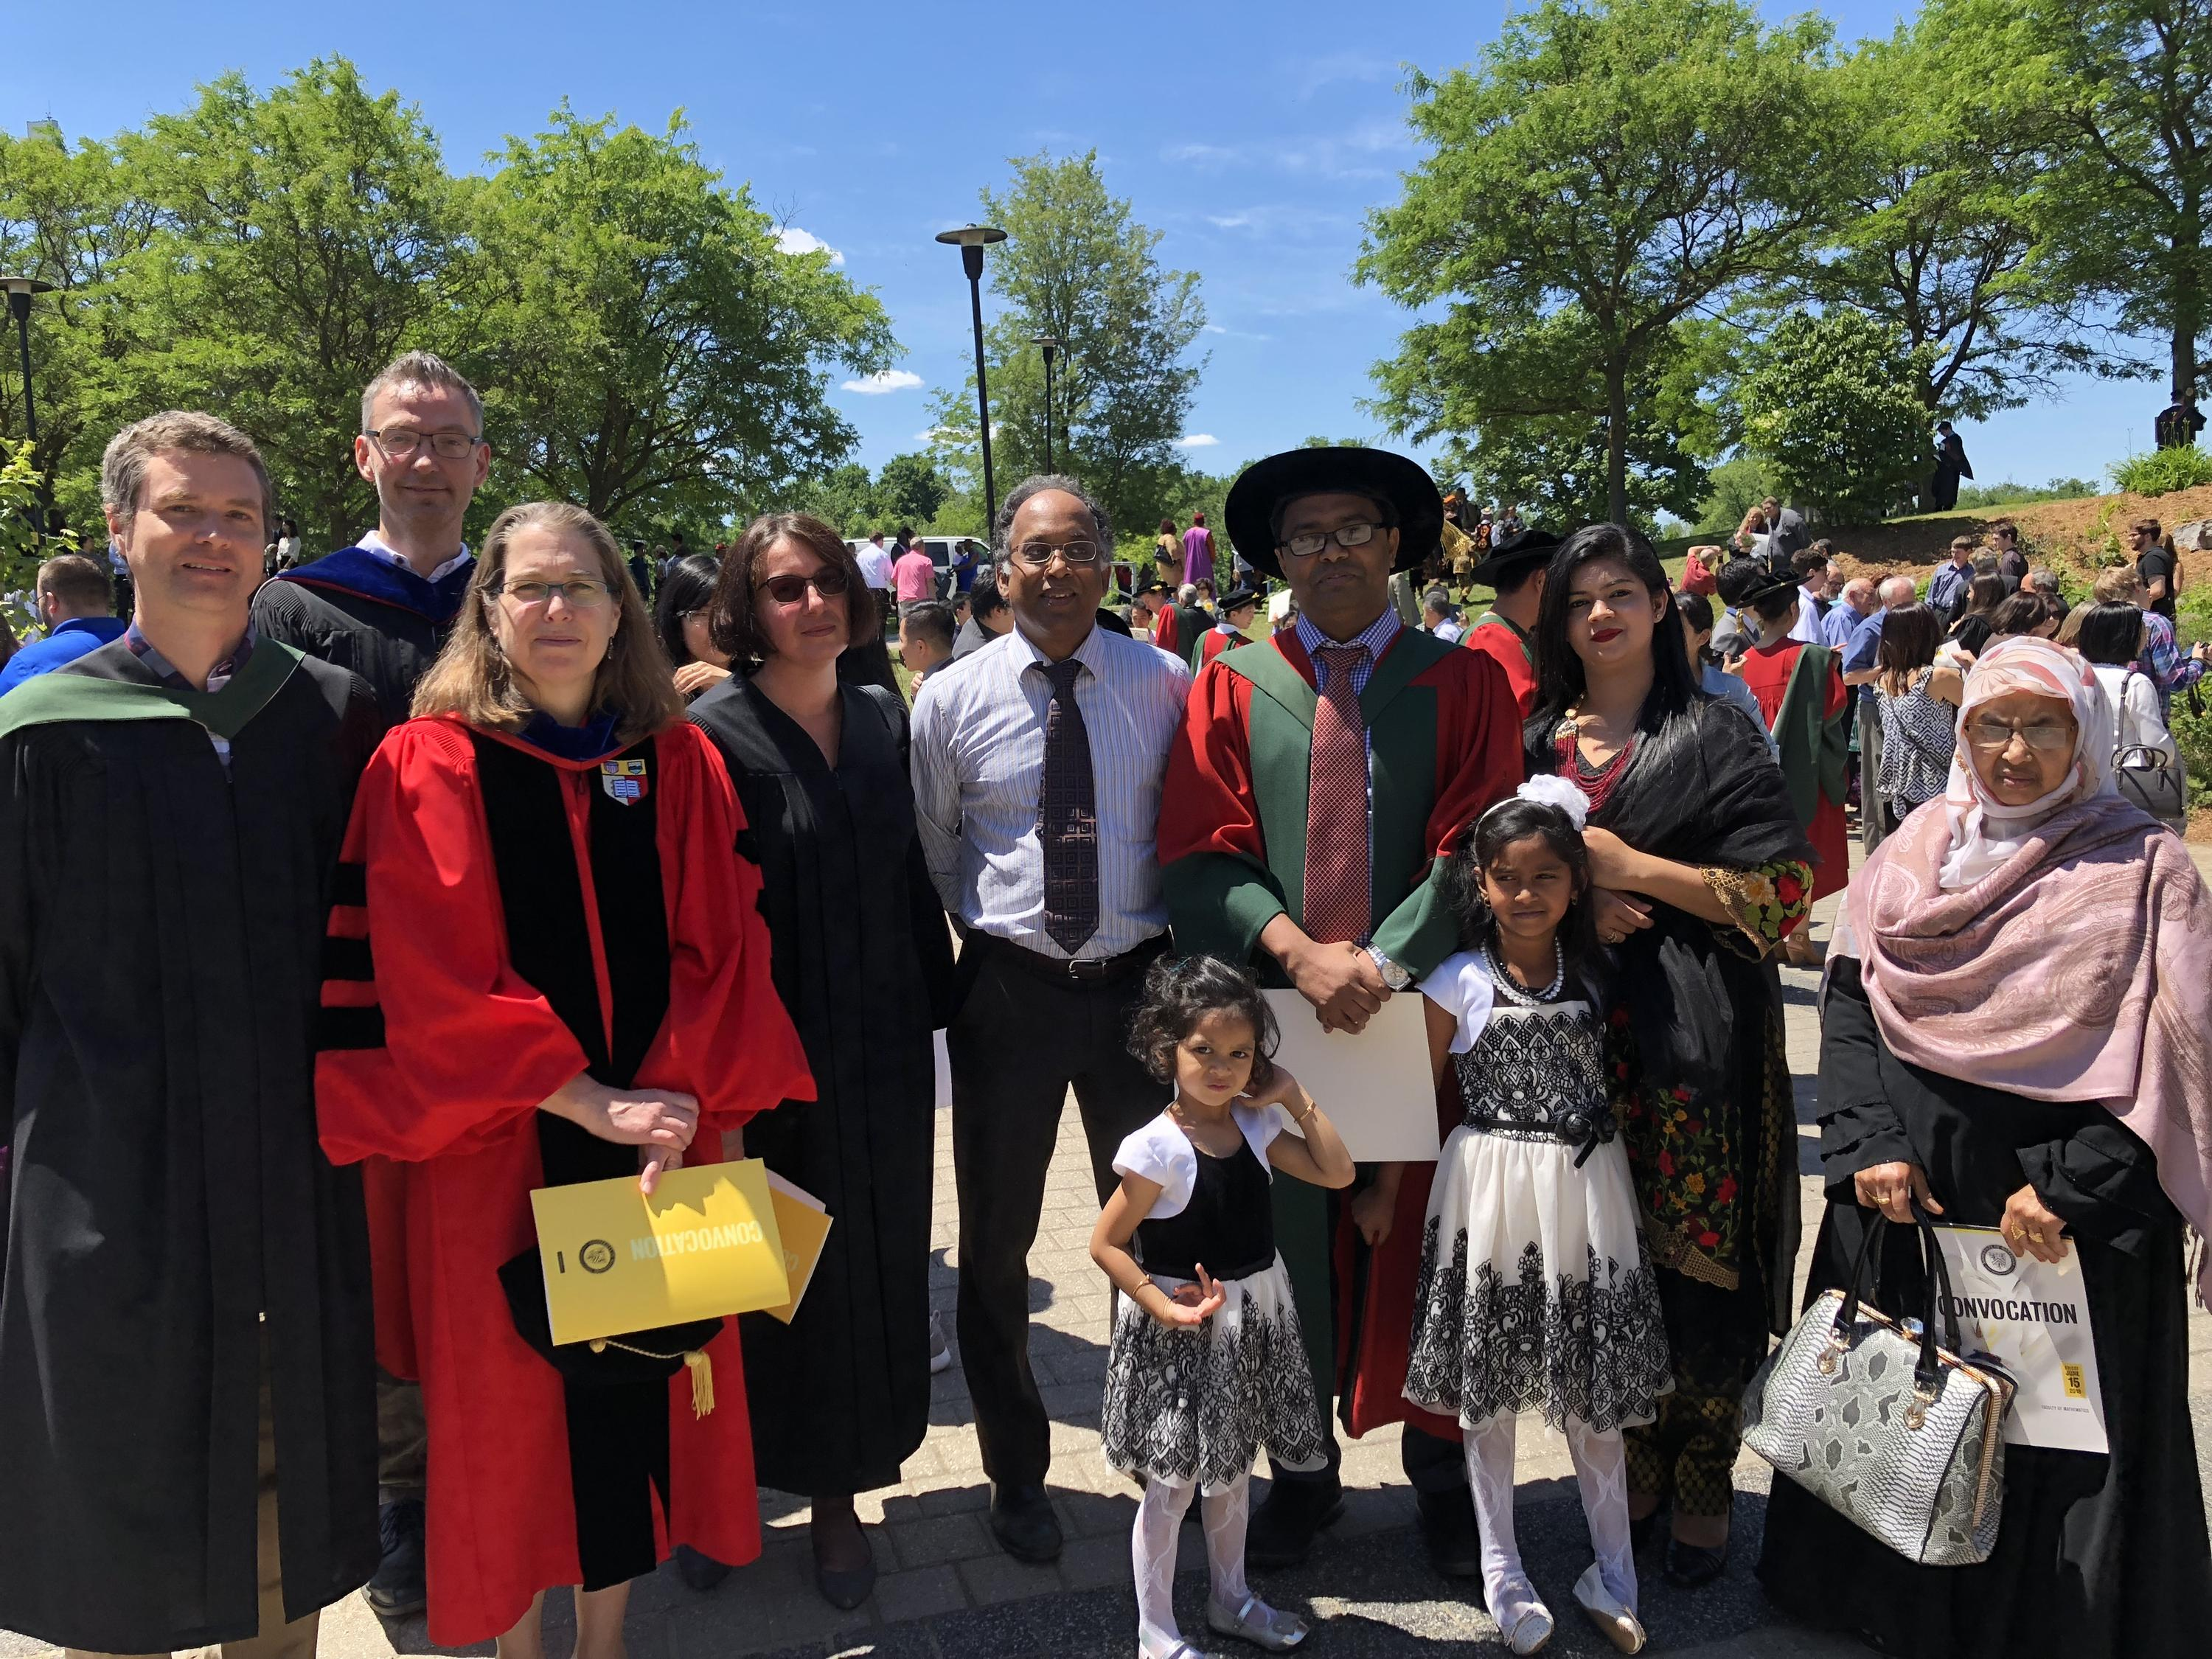 Convocation Spring 2018